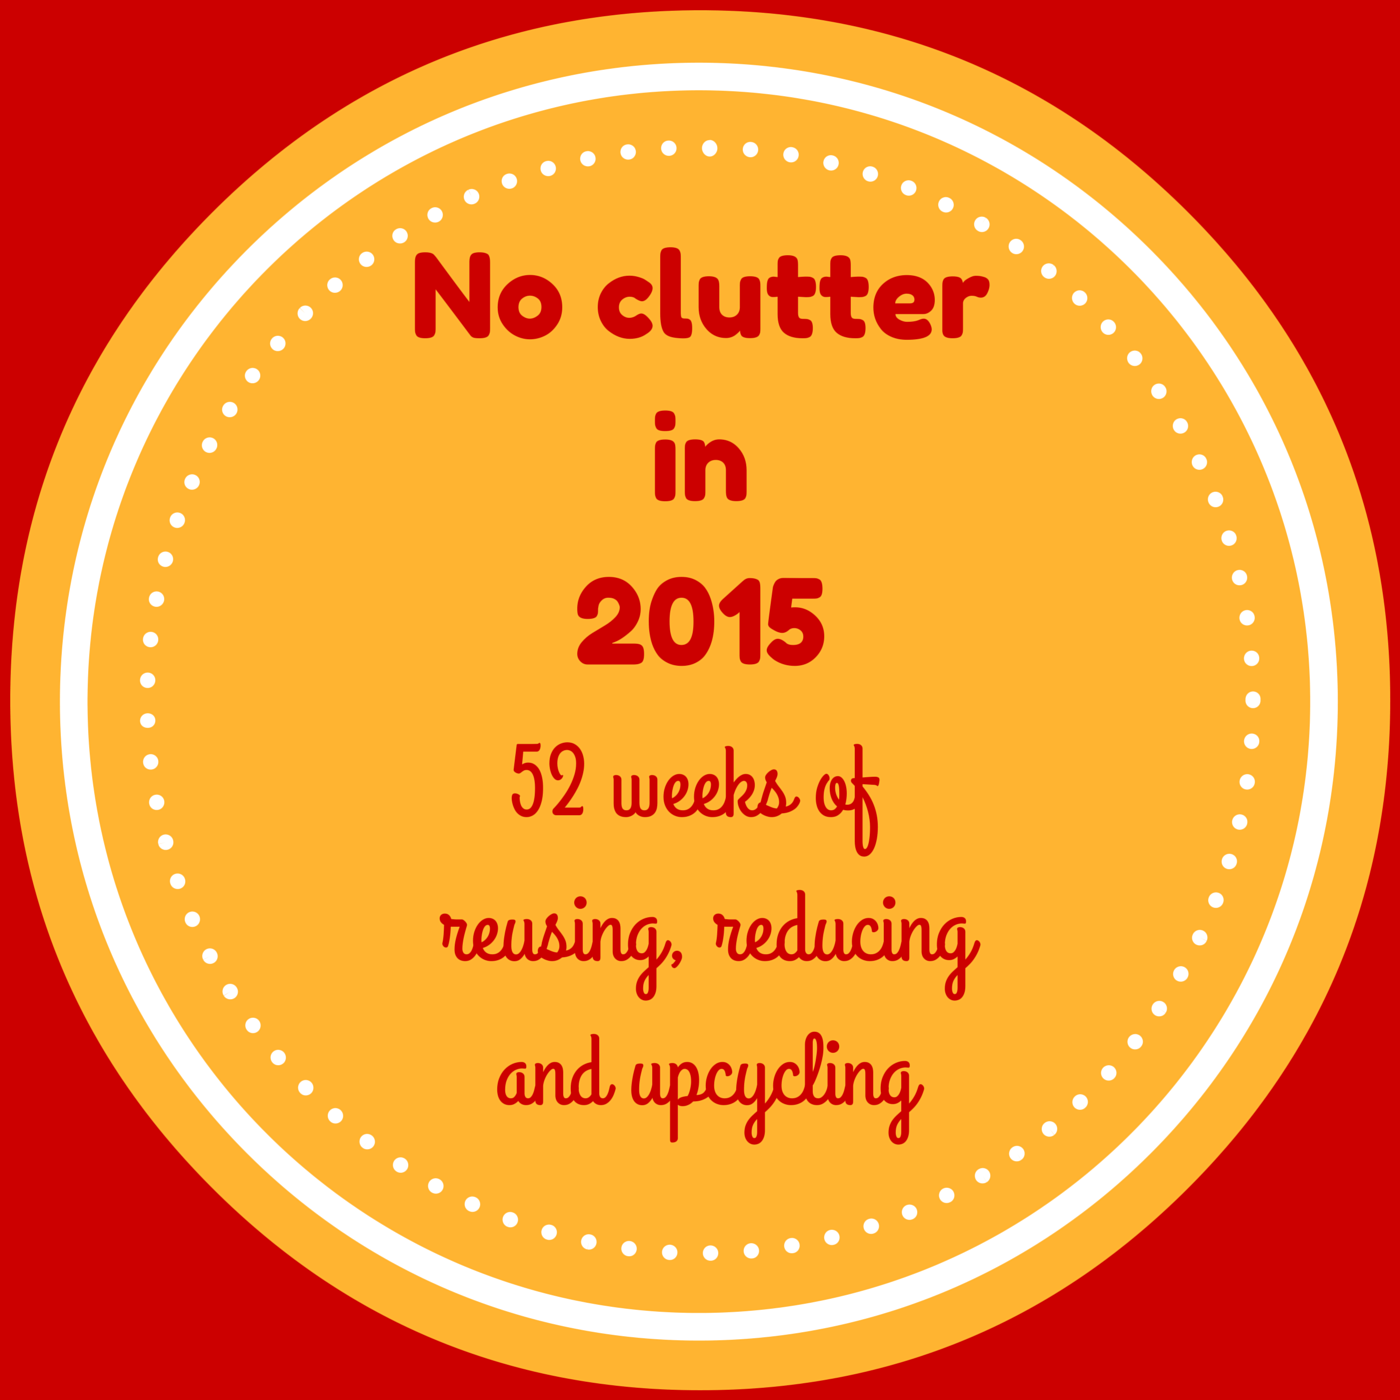 declutter, upcycle